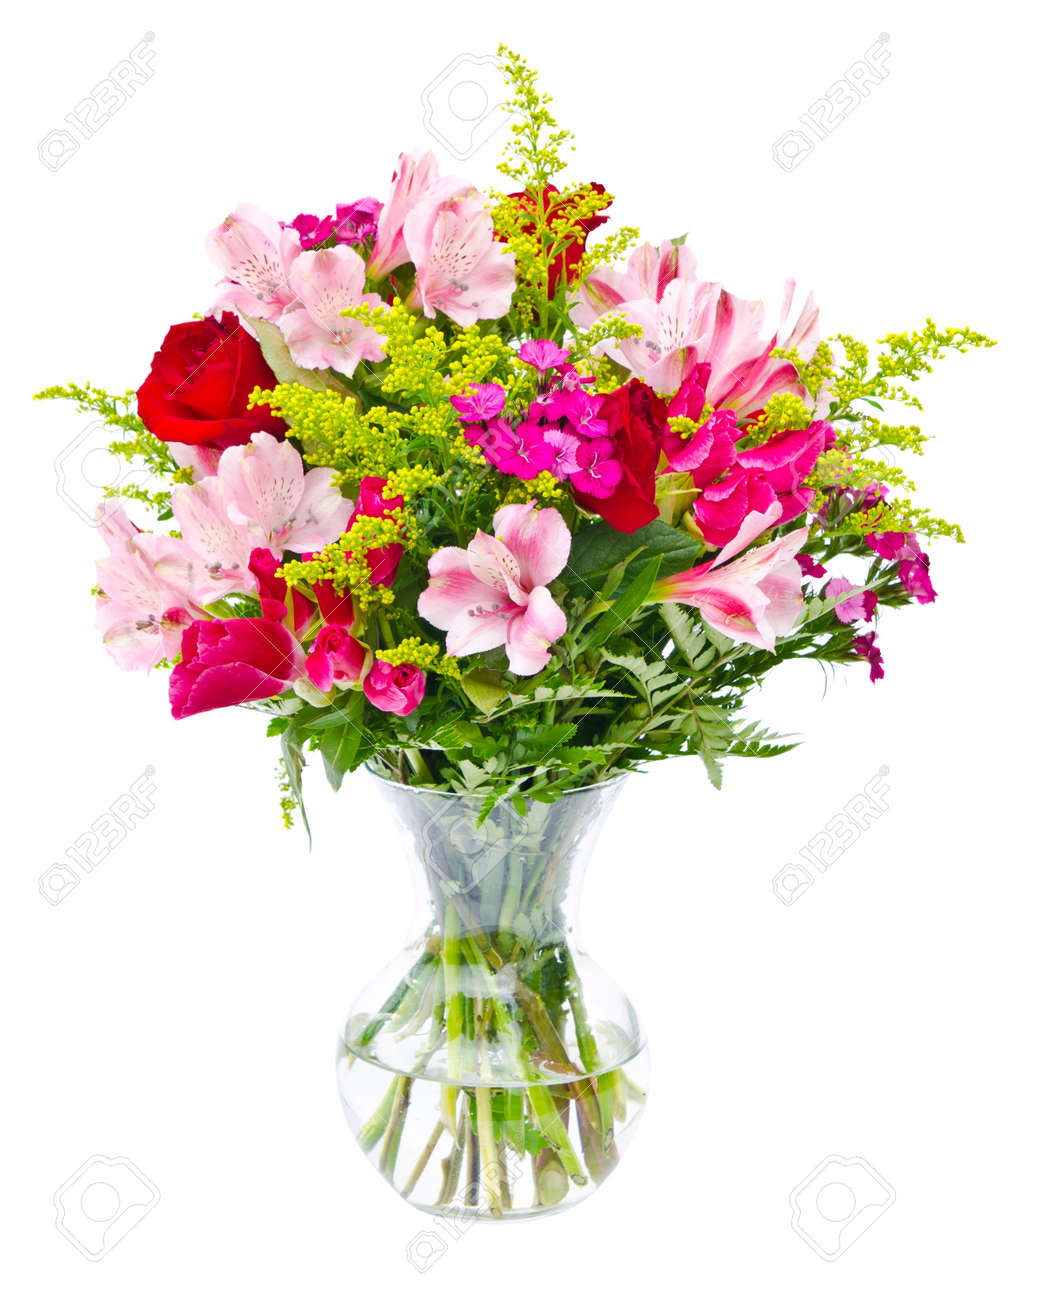 Colorful Flower Bouquet Arrangement Centerpiece In Vase Isolated ...